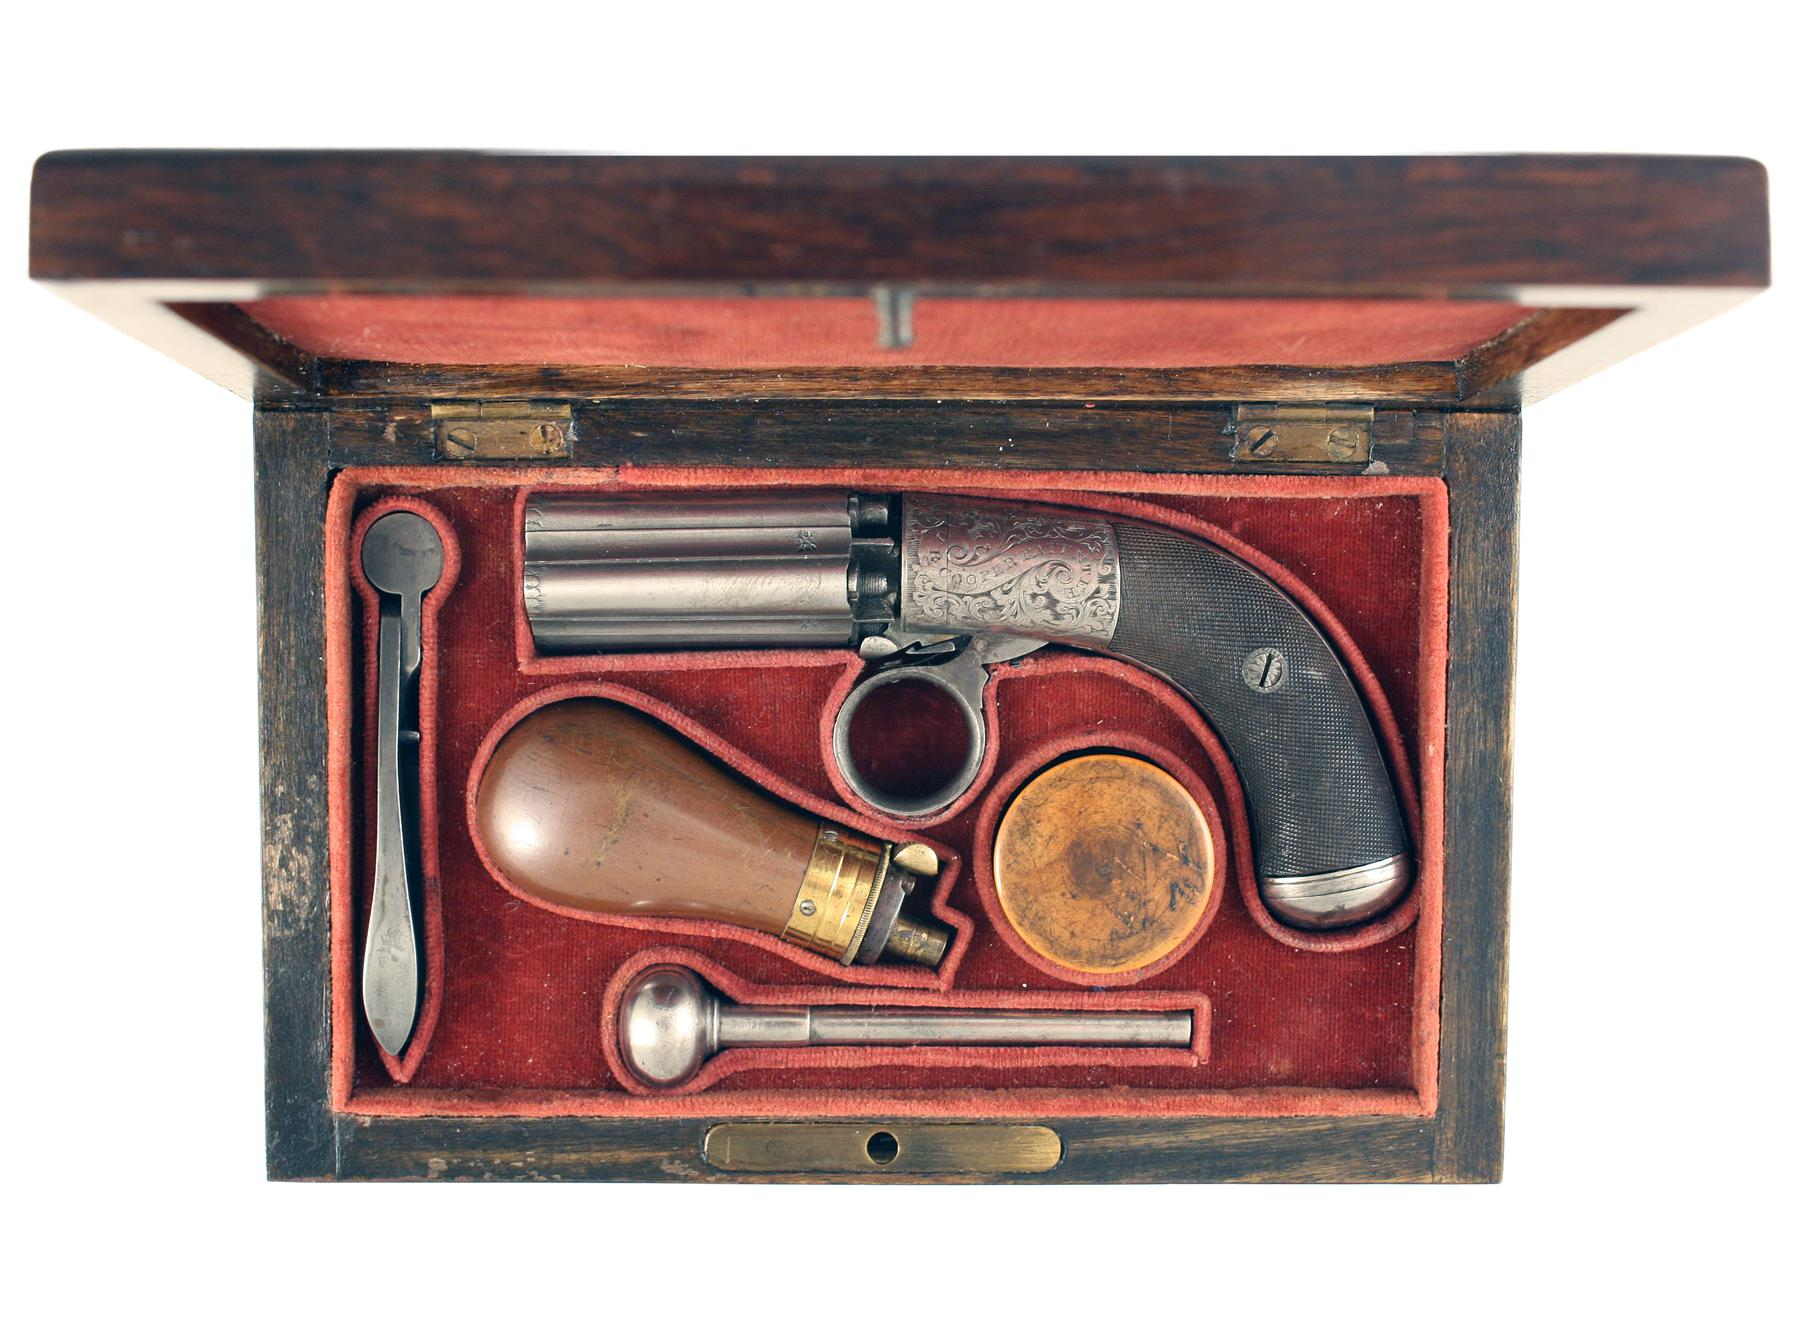 A Small Pepperbox Revolver